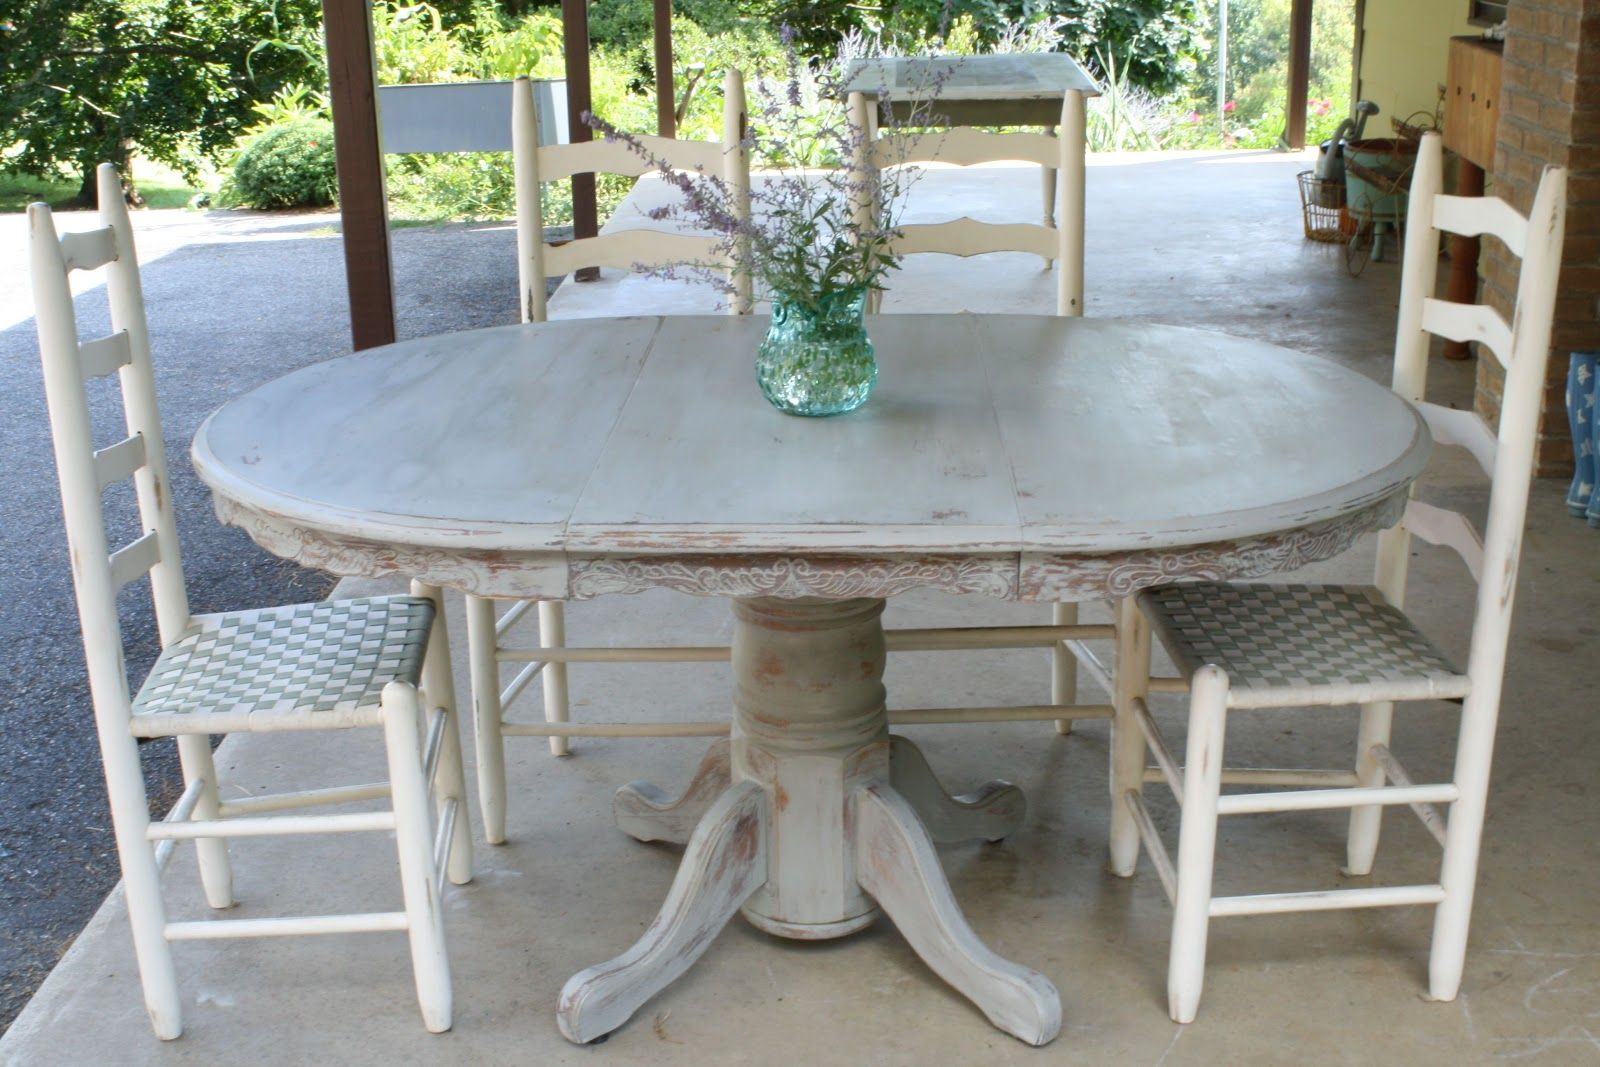 Primitive & Proper: Weathered Paris Gray Dining Table How